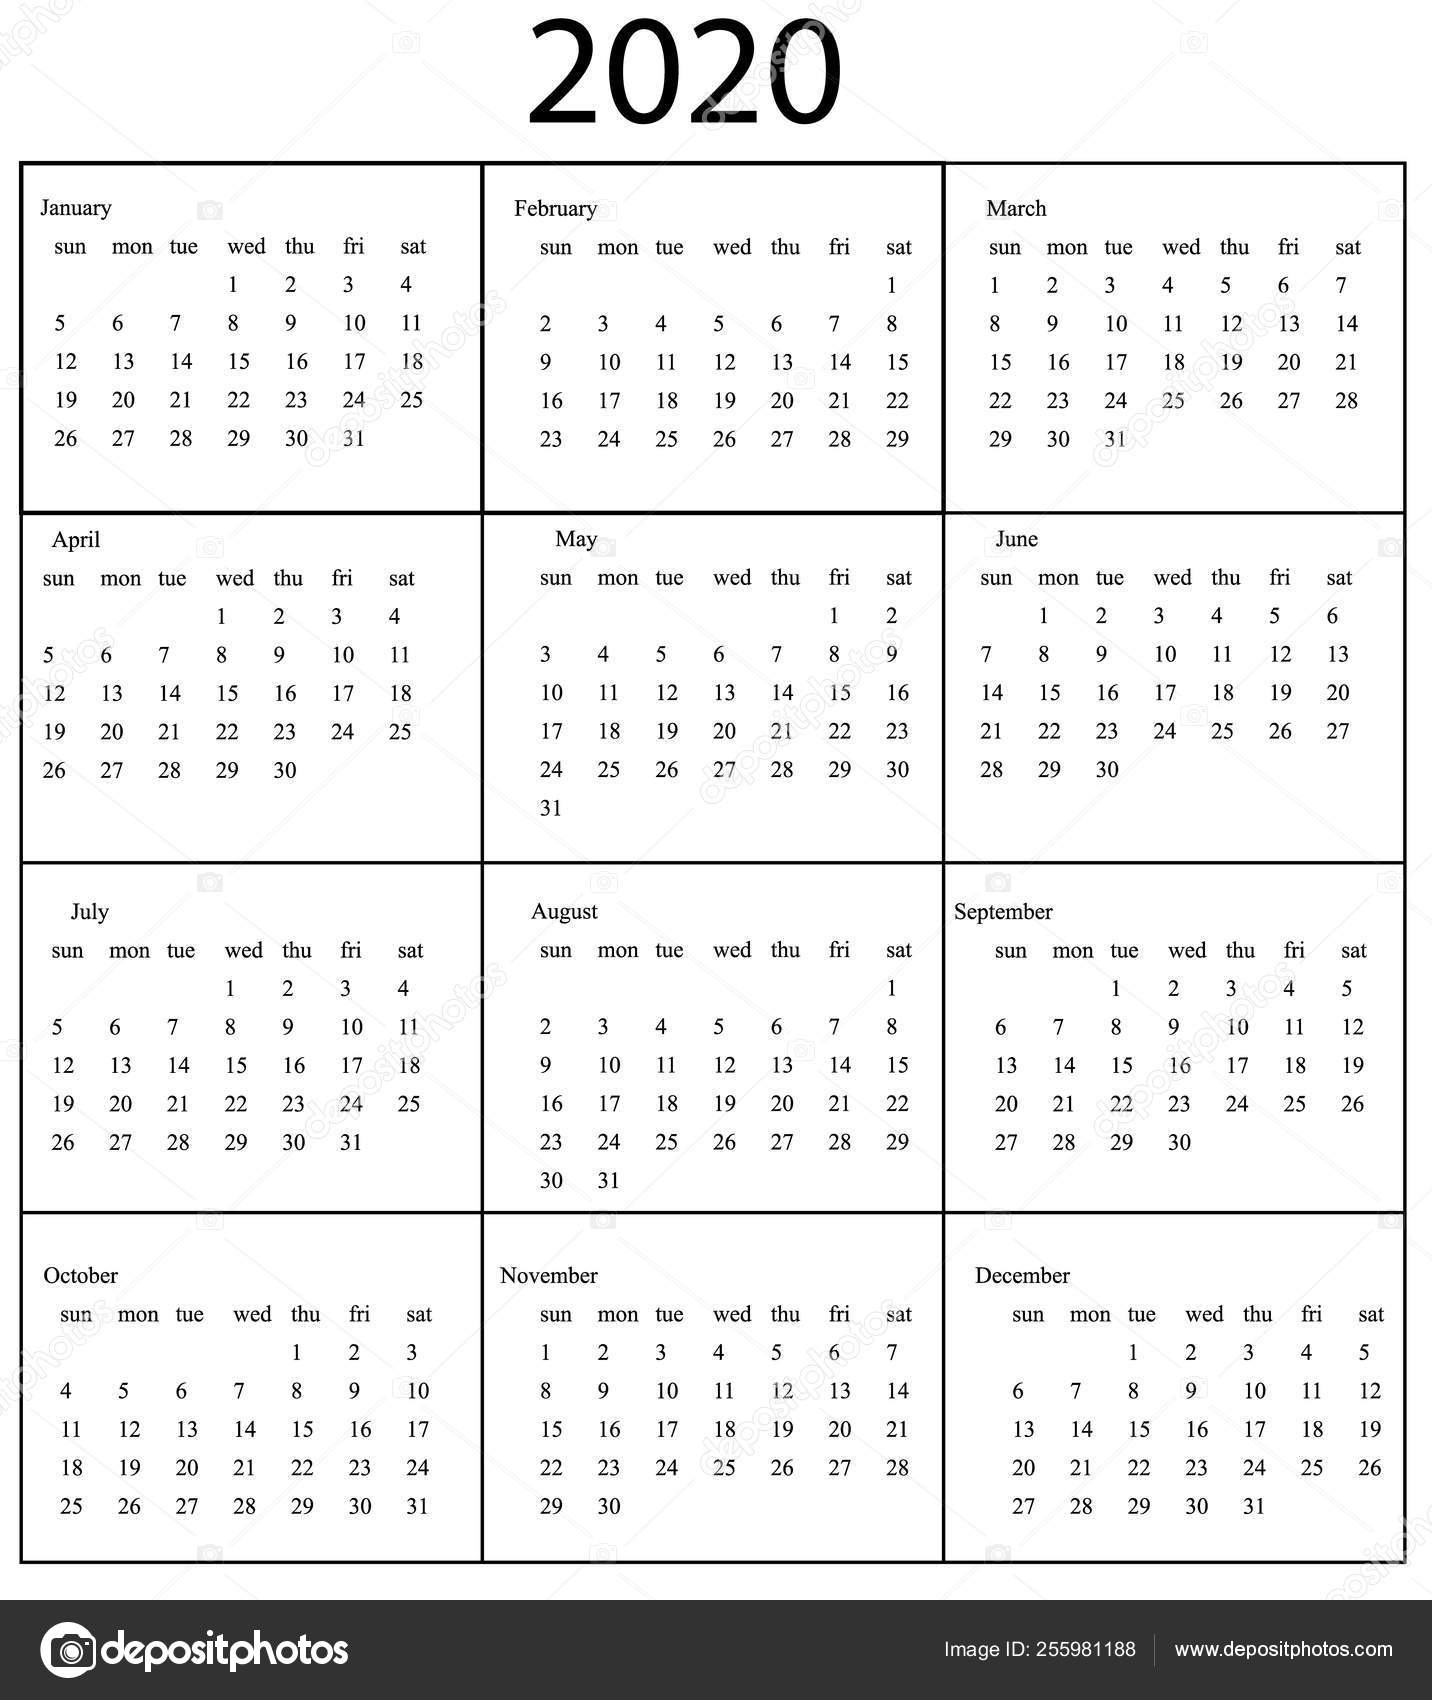 2020 Calendar Template. Starts Sunday — Векторное Изображение pertaining to 2020 Monday - Friday Calendar Printable